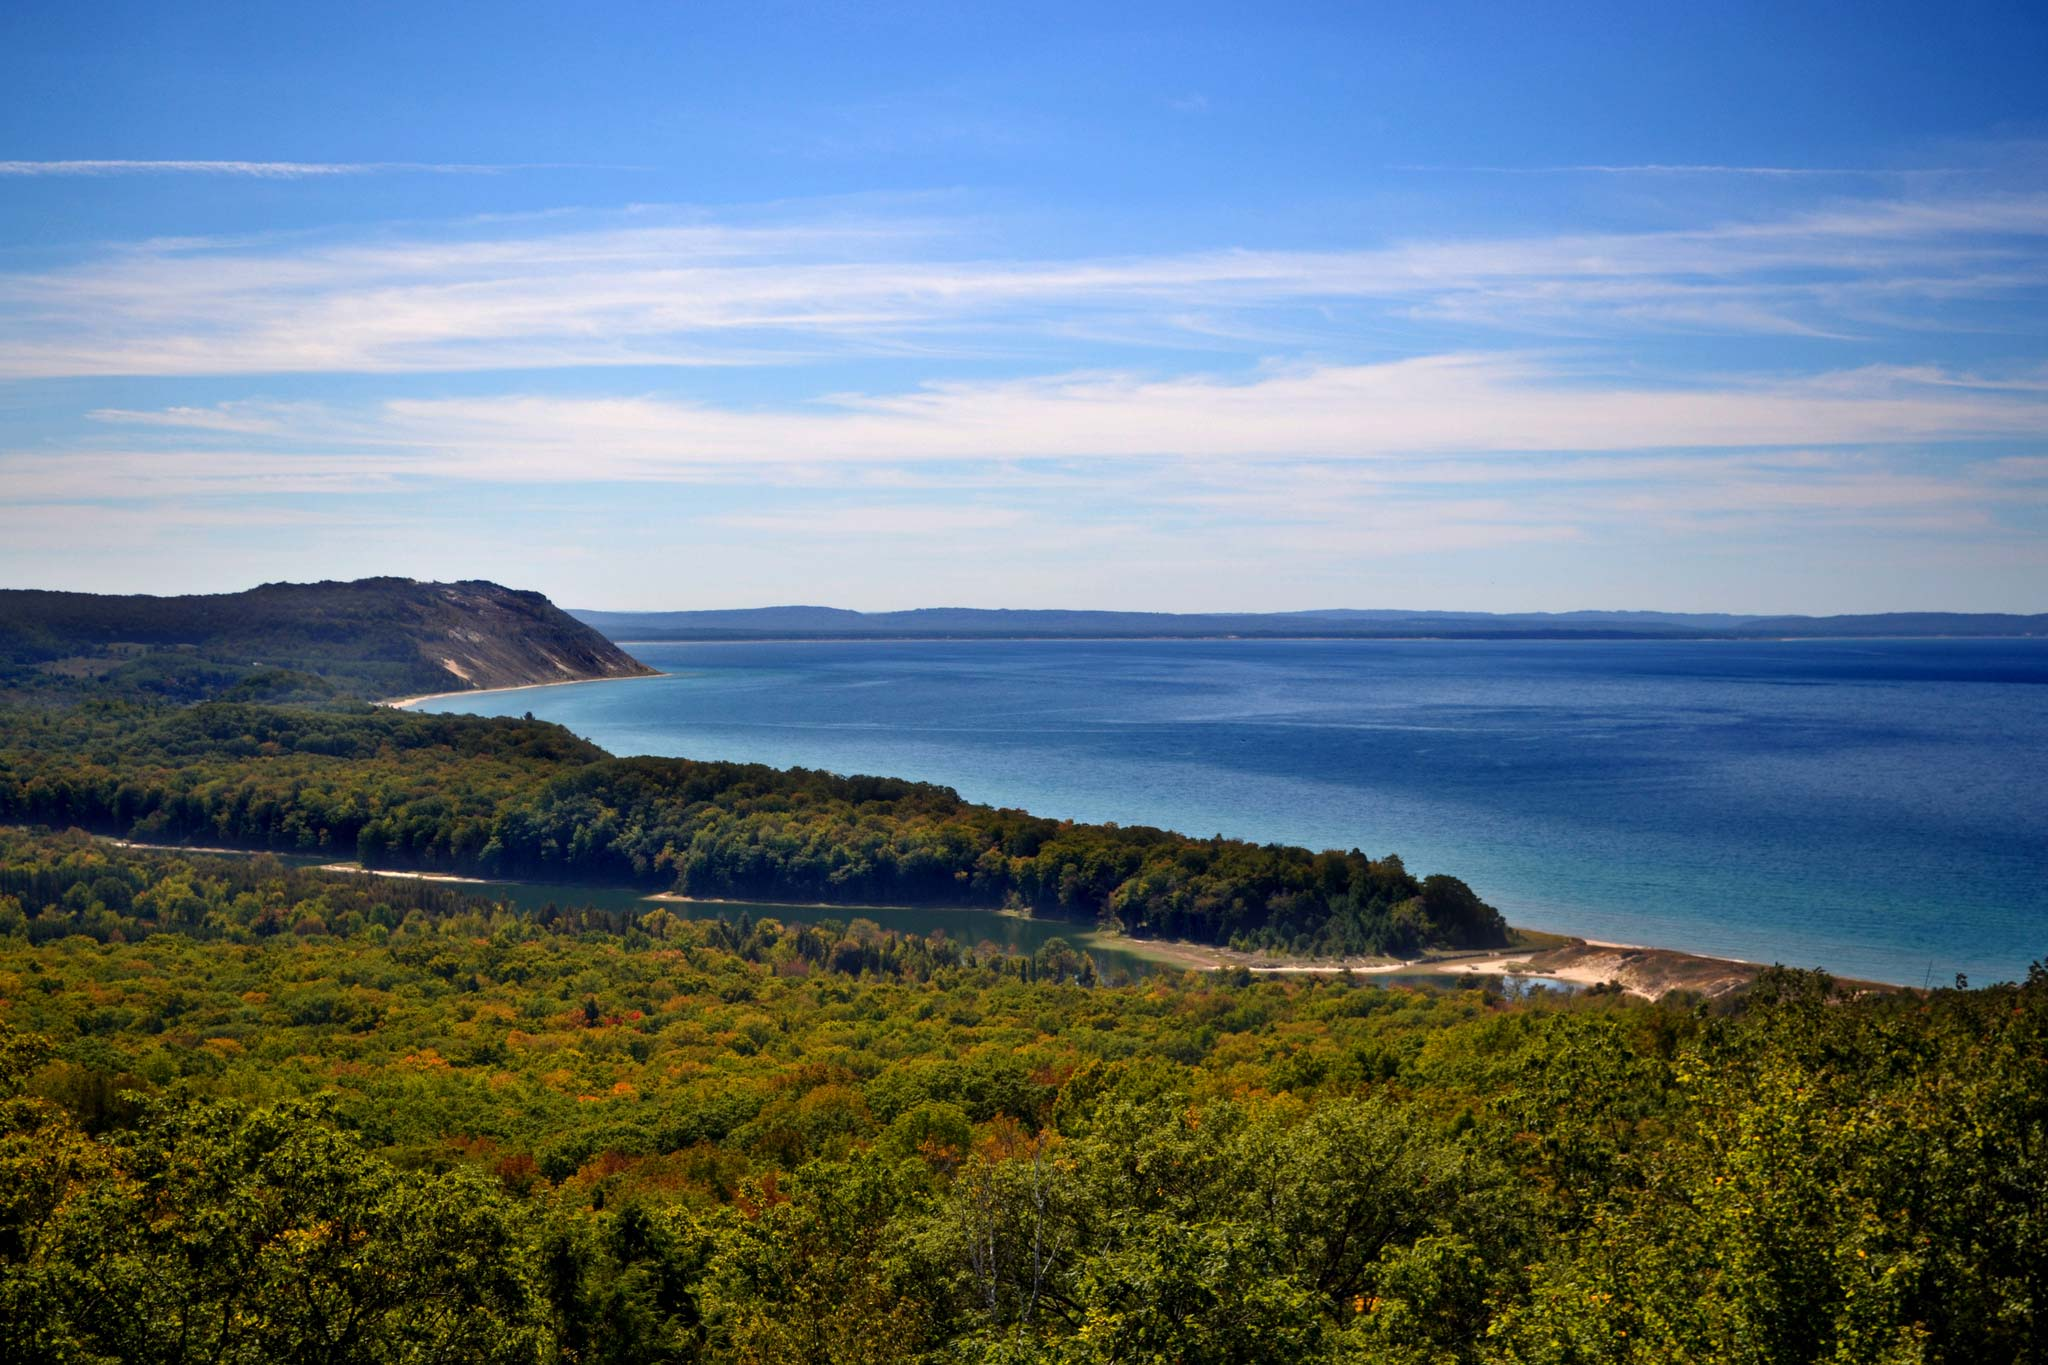 Sleeping Bear Dunes National Lakeshore. Image credit: Todd Marsee, Michigan Sea Grant